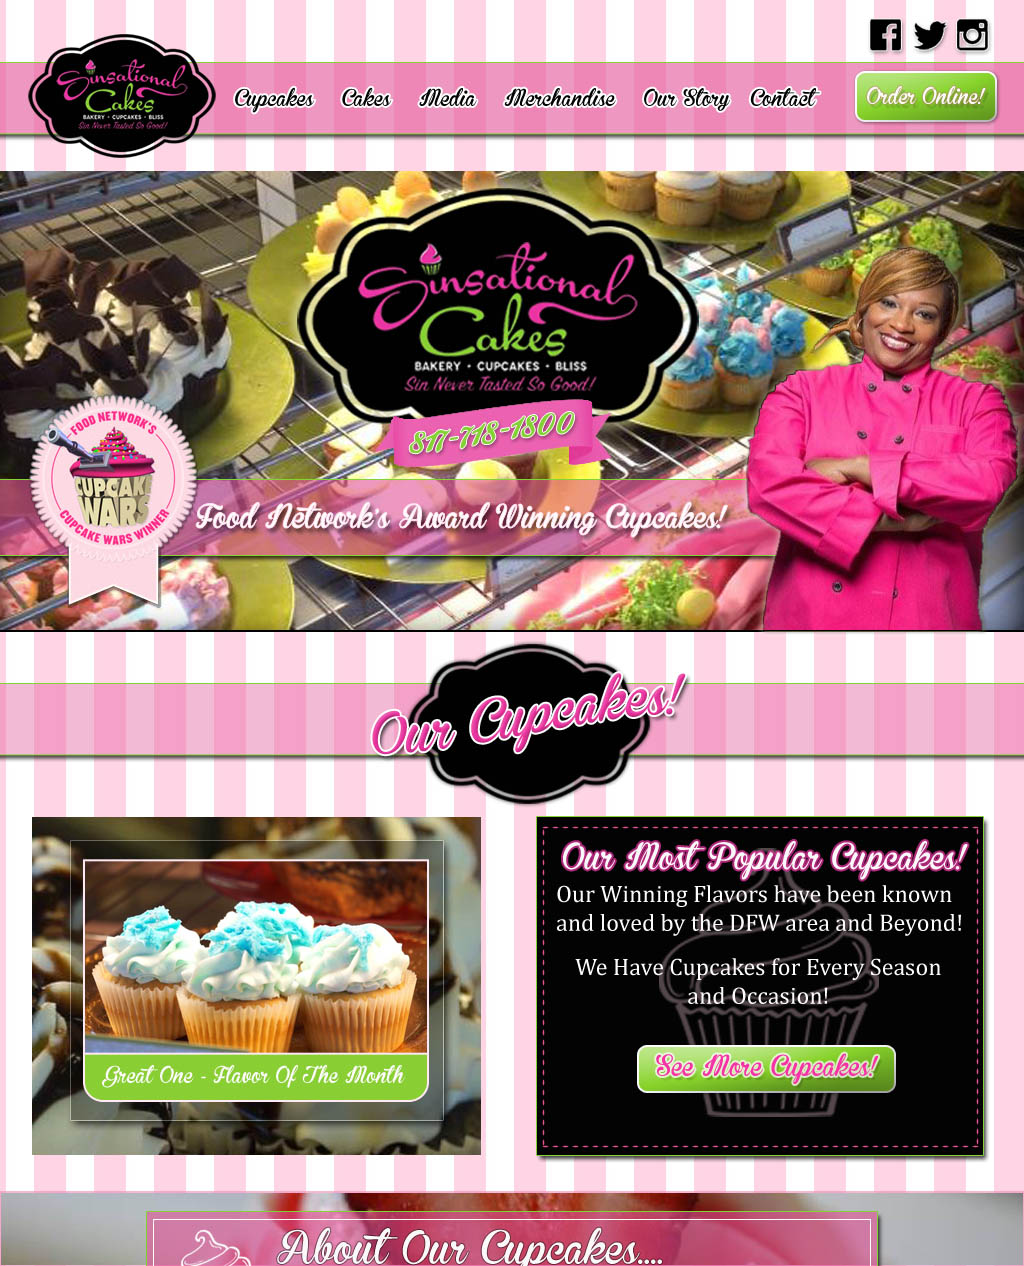 Sinsational_Cakes_Homepage